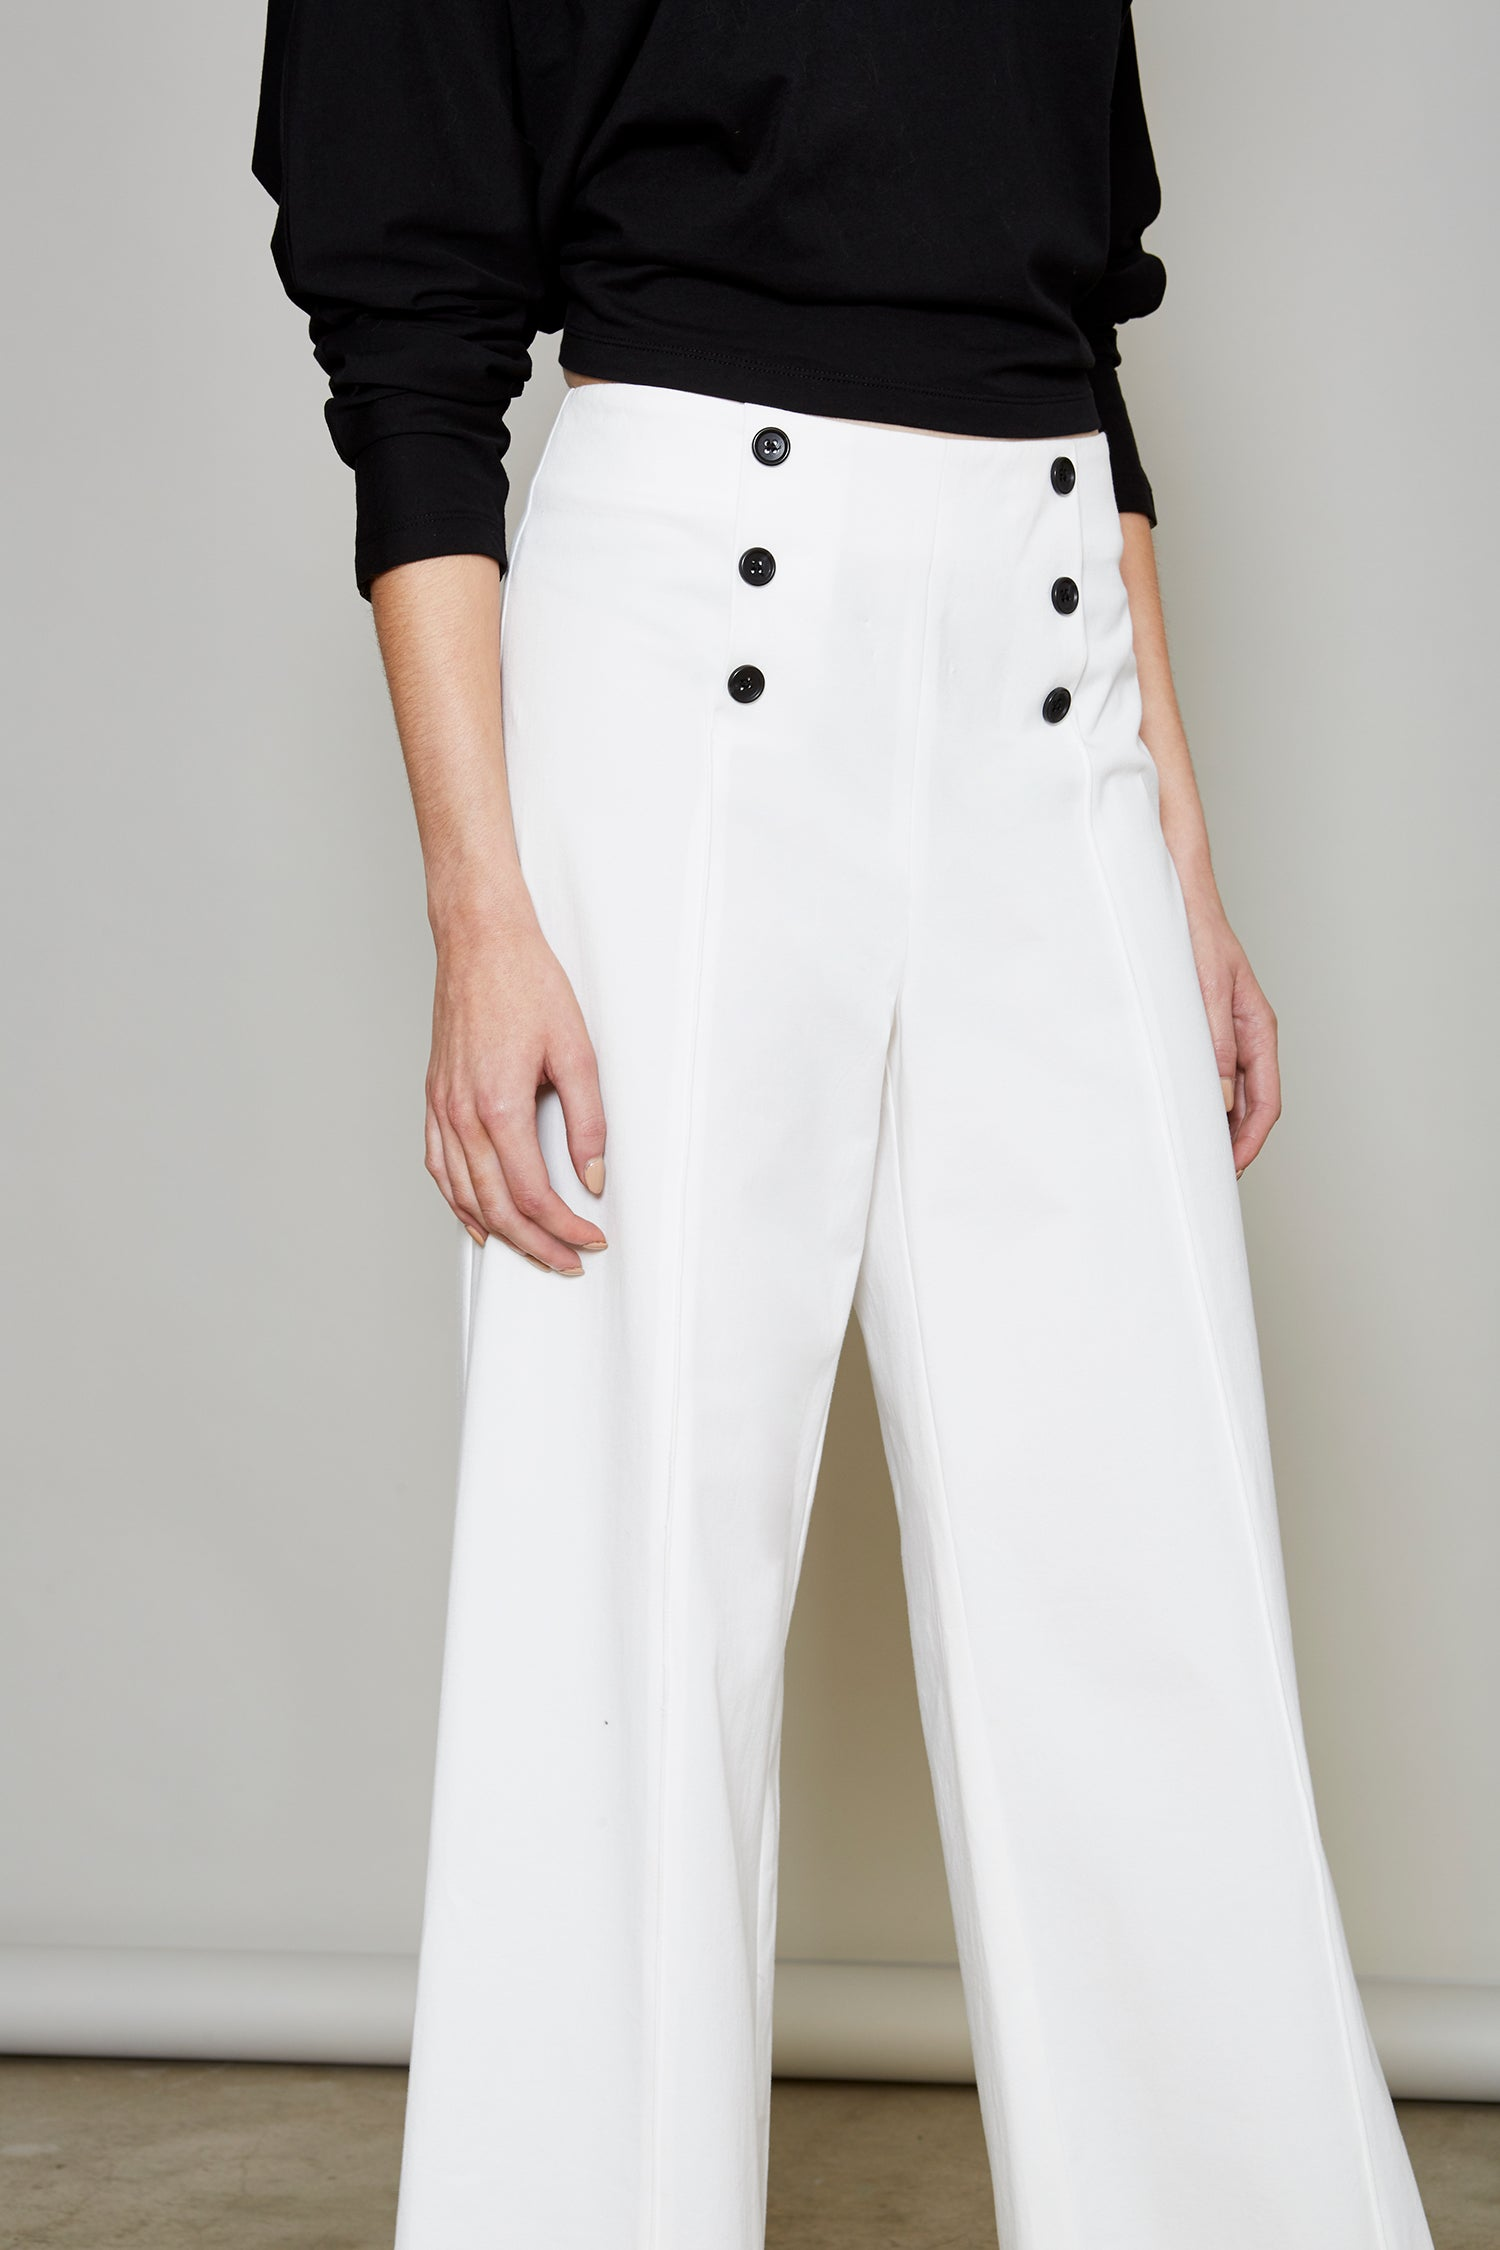 Robert Rodriguez Studio Women's Fashion Designer High Waisted Ivory Sailor Pant